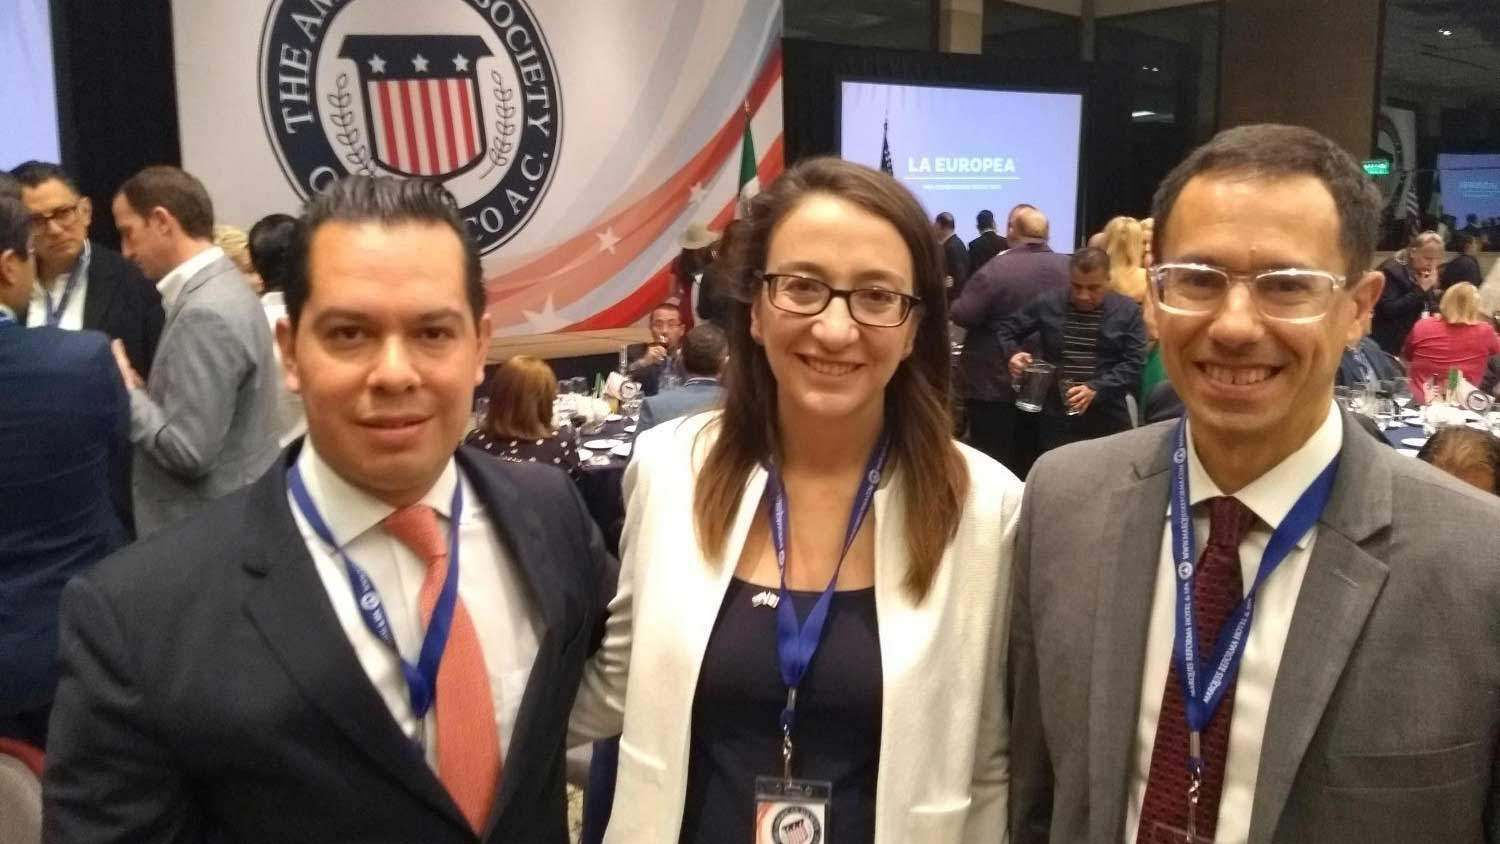 From left, trade representative in Mexico City José Andrés García, Arizona Trade and Investment Office in Mexico director Natalia Pérez and Arizona Chamber of Commerce and Industry President Glenn Hamer at an American Society of Mexico event.